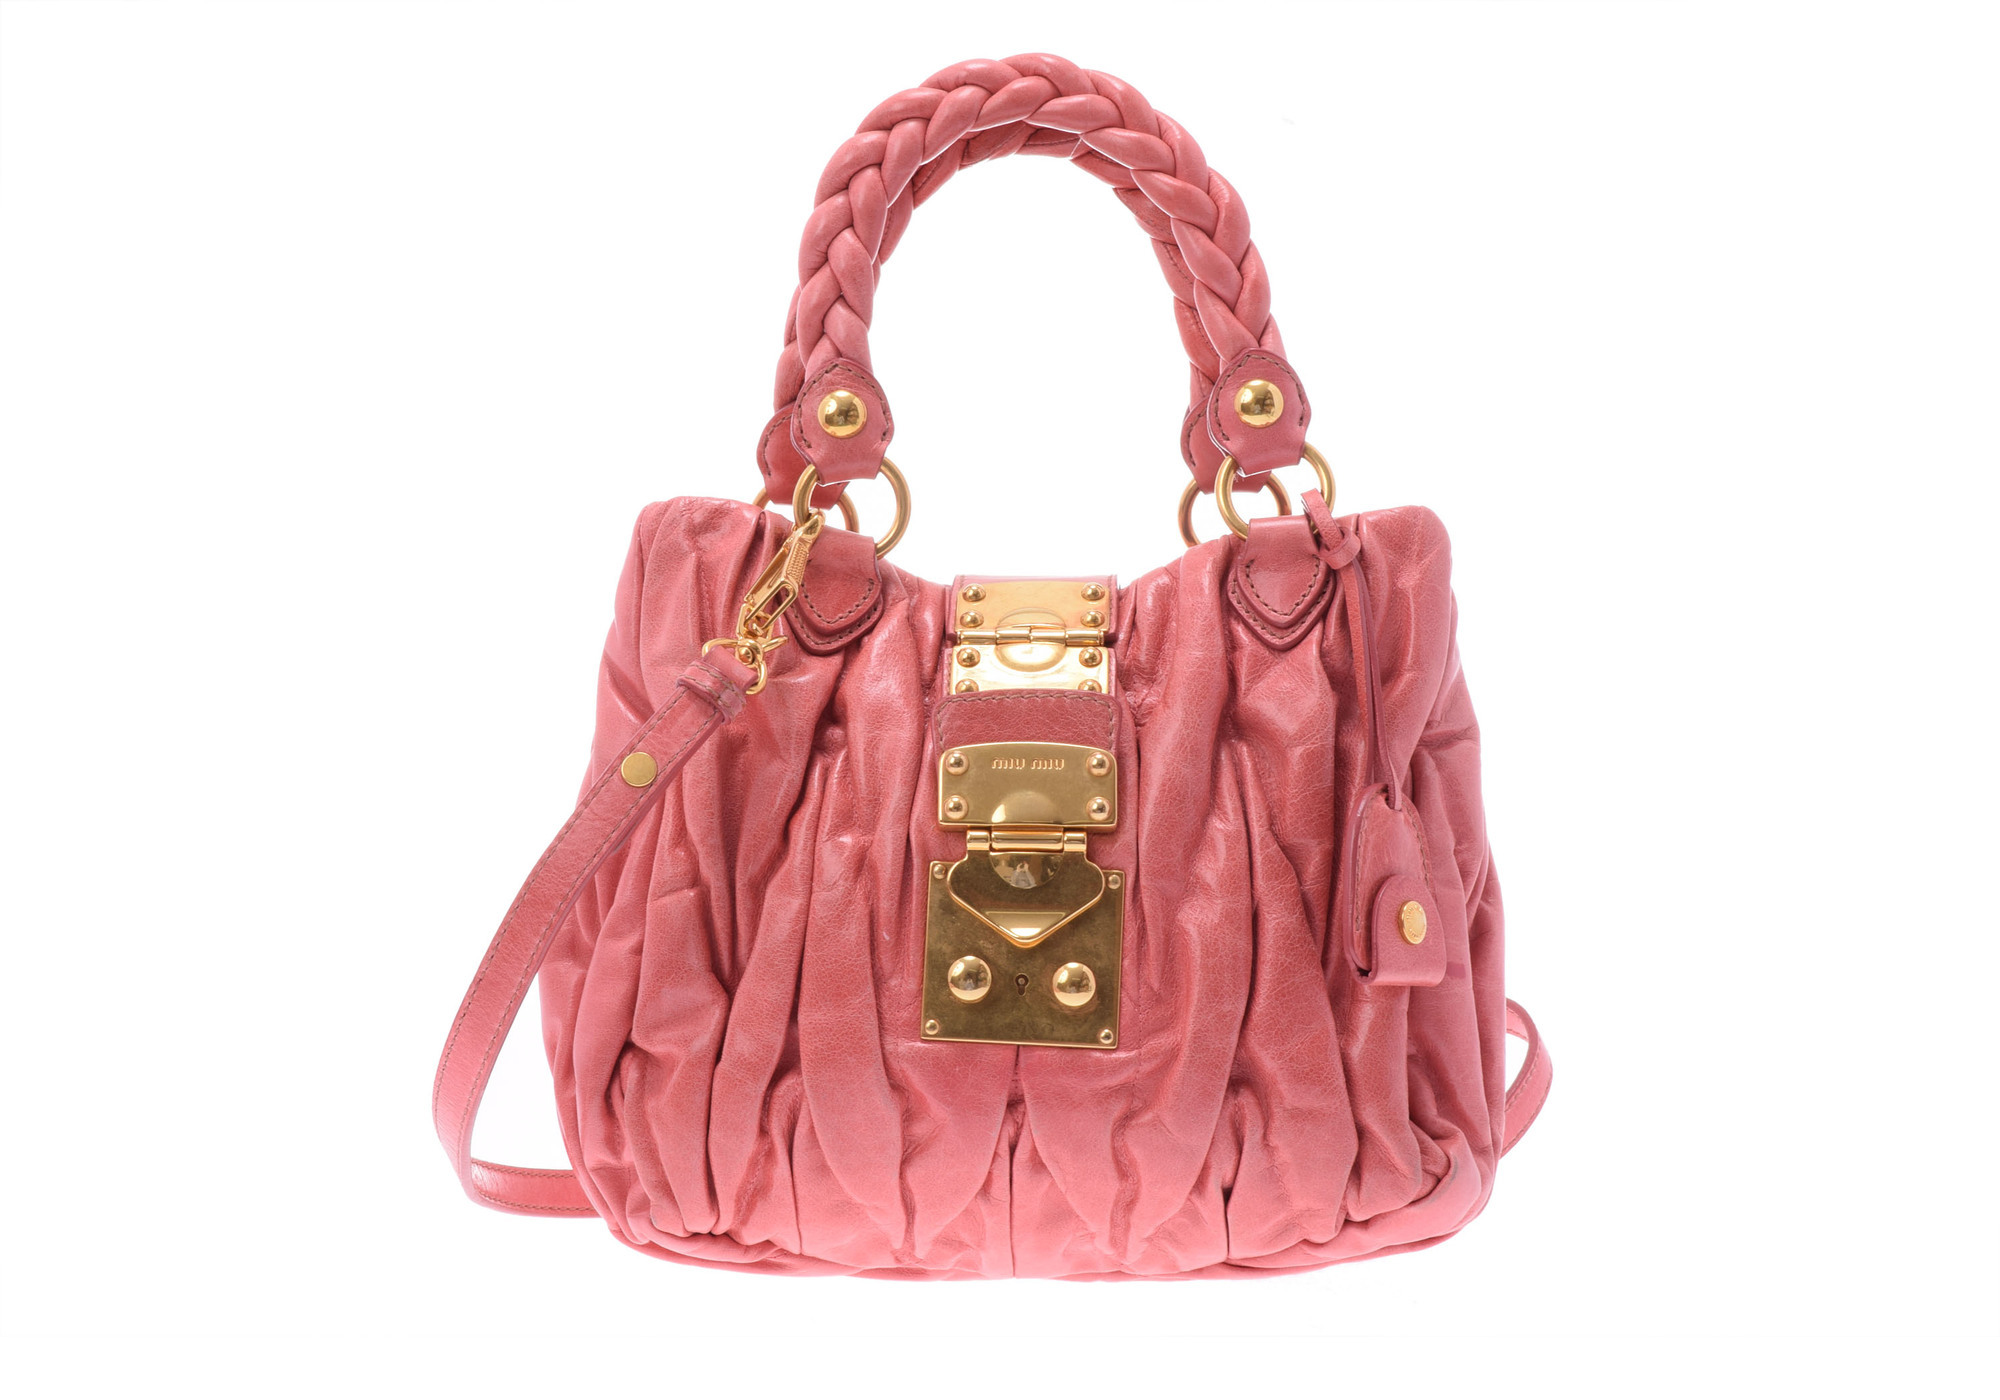 f8c764d61 Authentic Miu Miu Matelasse 2way Hand Bag Leather Handbag Pink  805000922665000